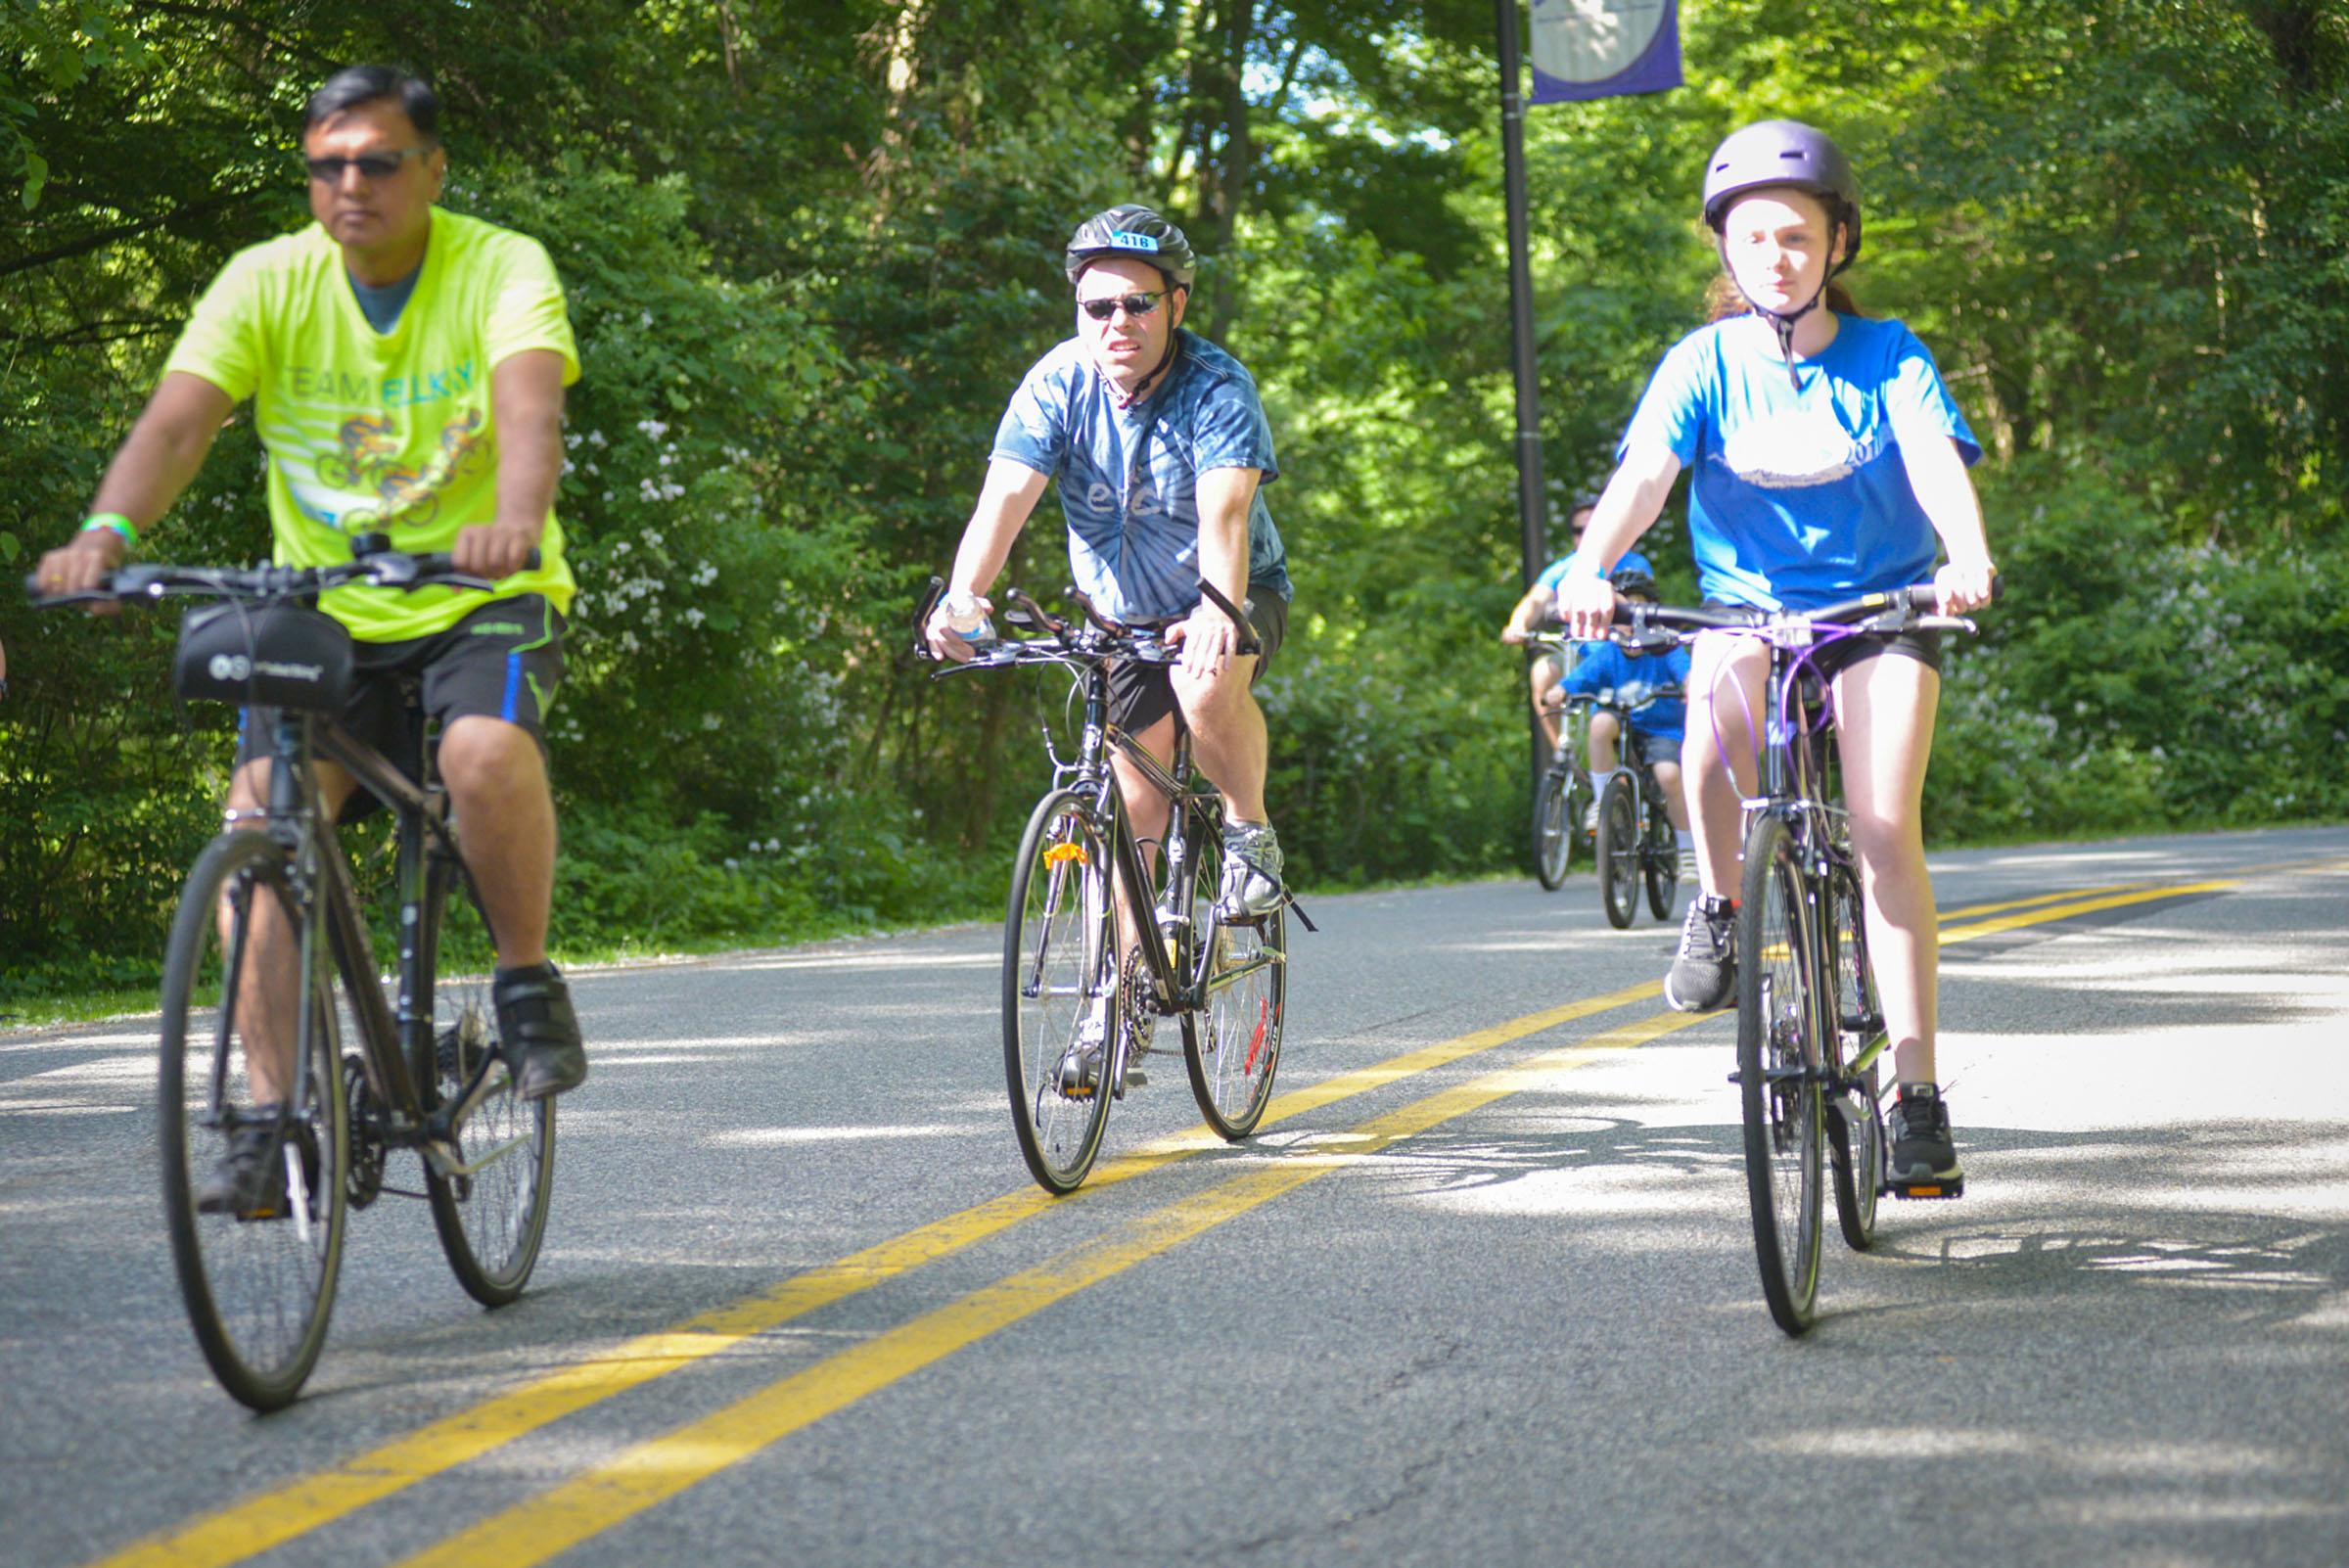 2017-06-04 GTD4A Charity Bike Ride - BCC - Paramus NJ-2044.jpg